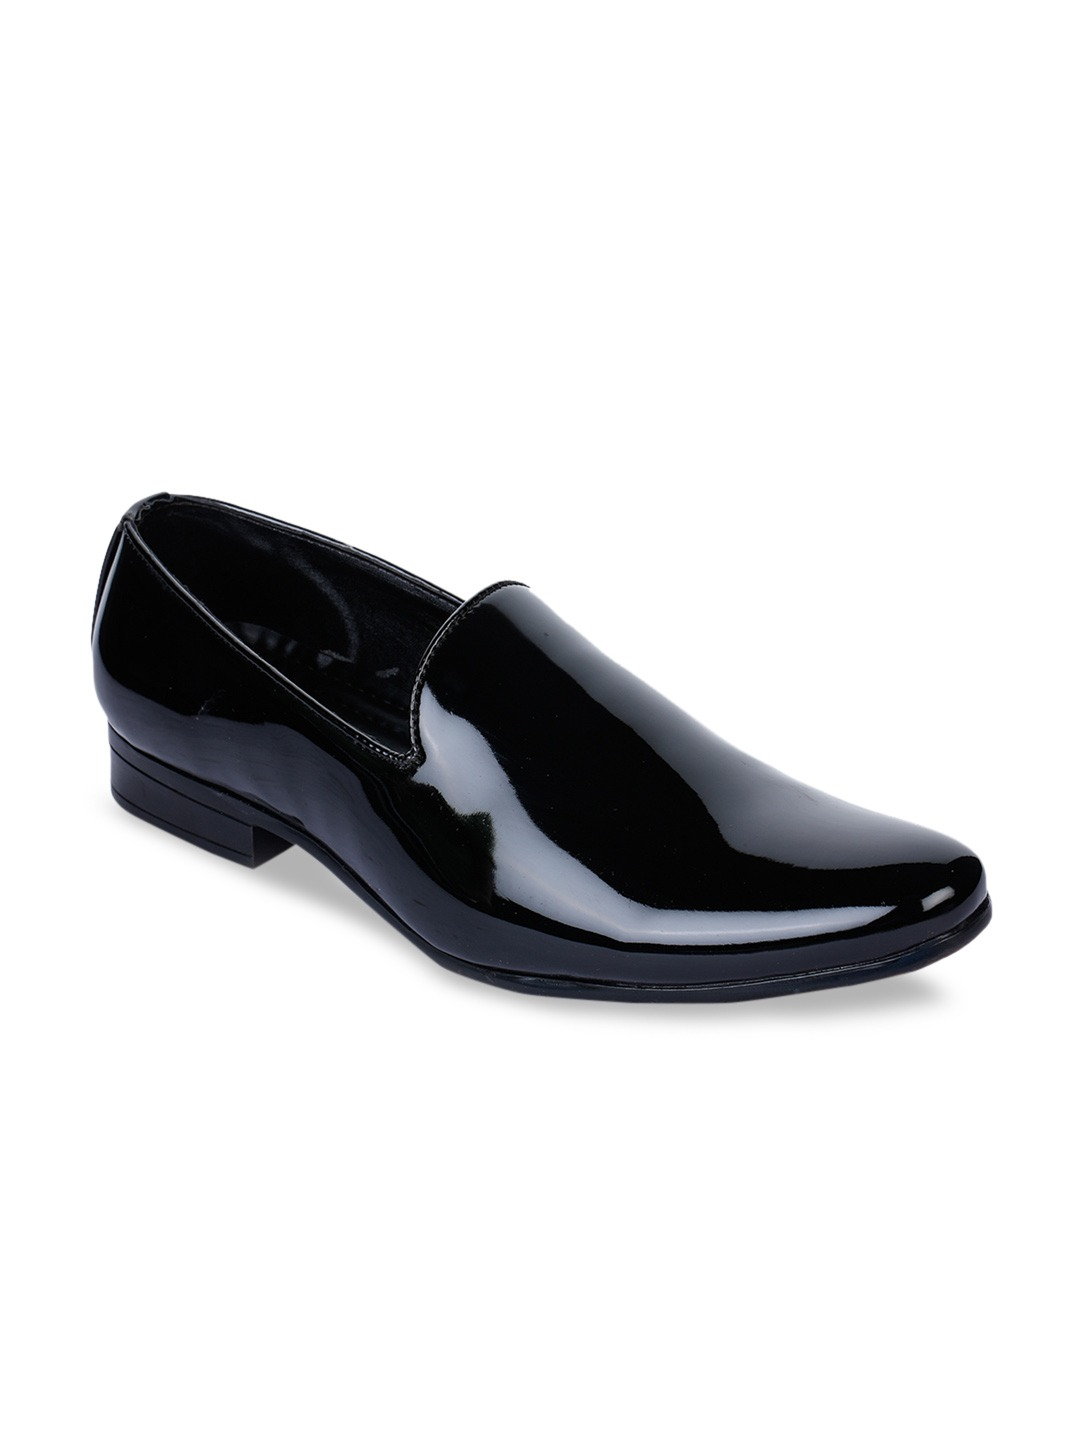 Black Solid Patent Leather Formal Slip-Ons